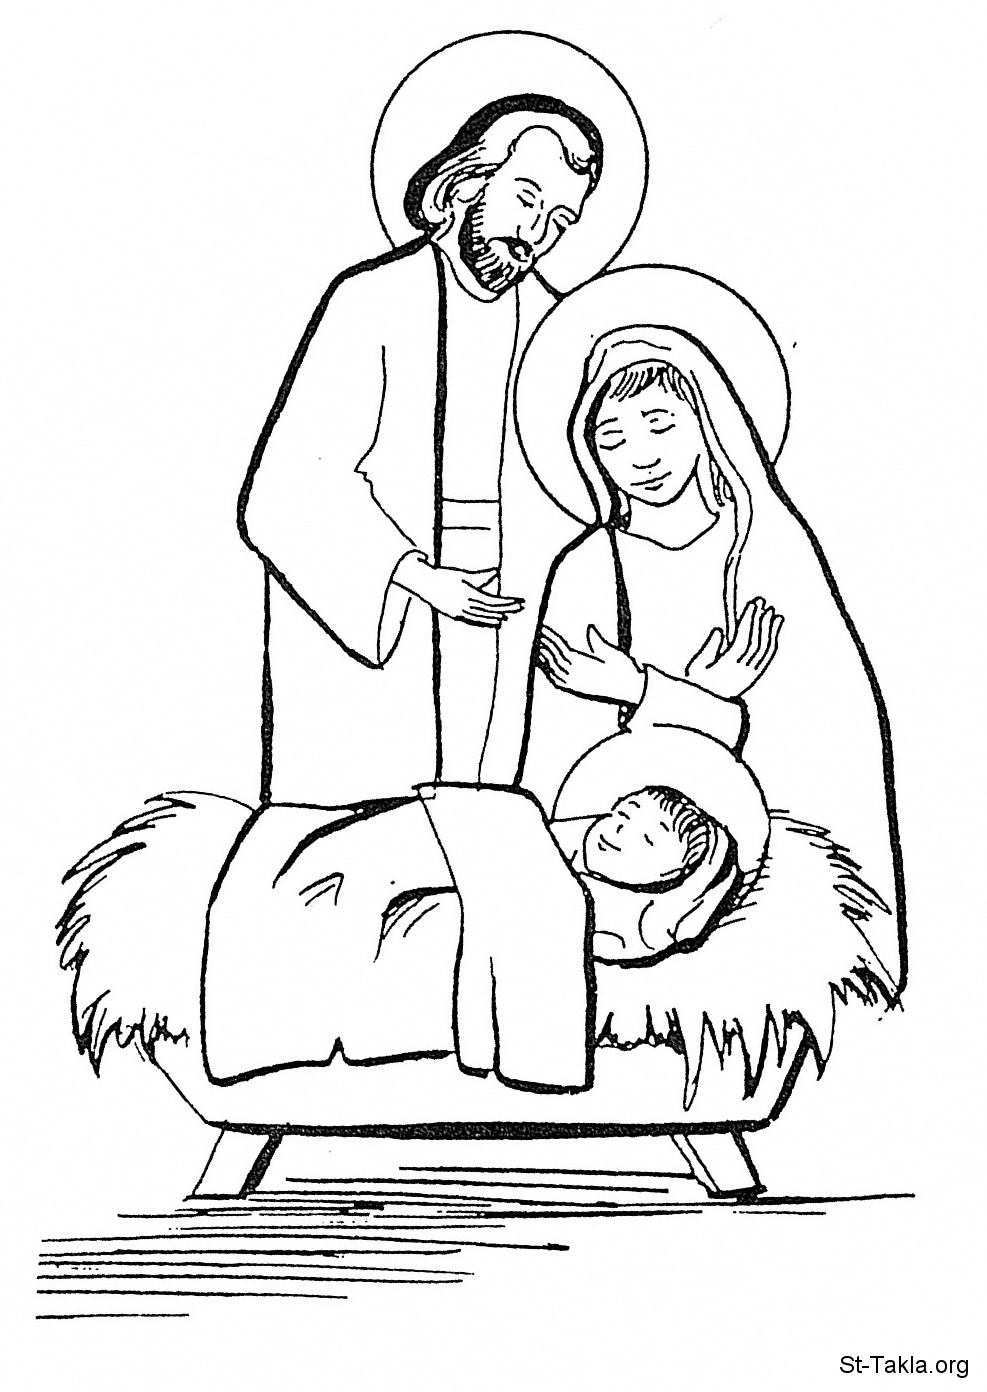 in the cartoon baby jesus